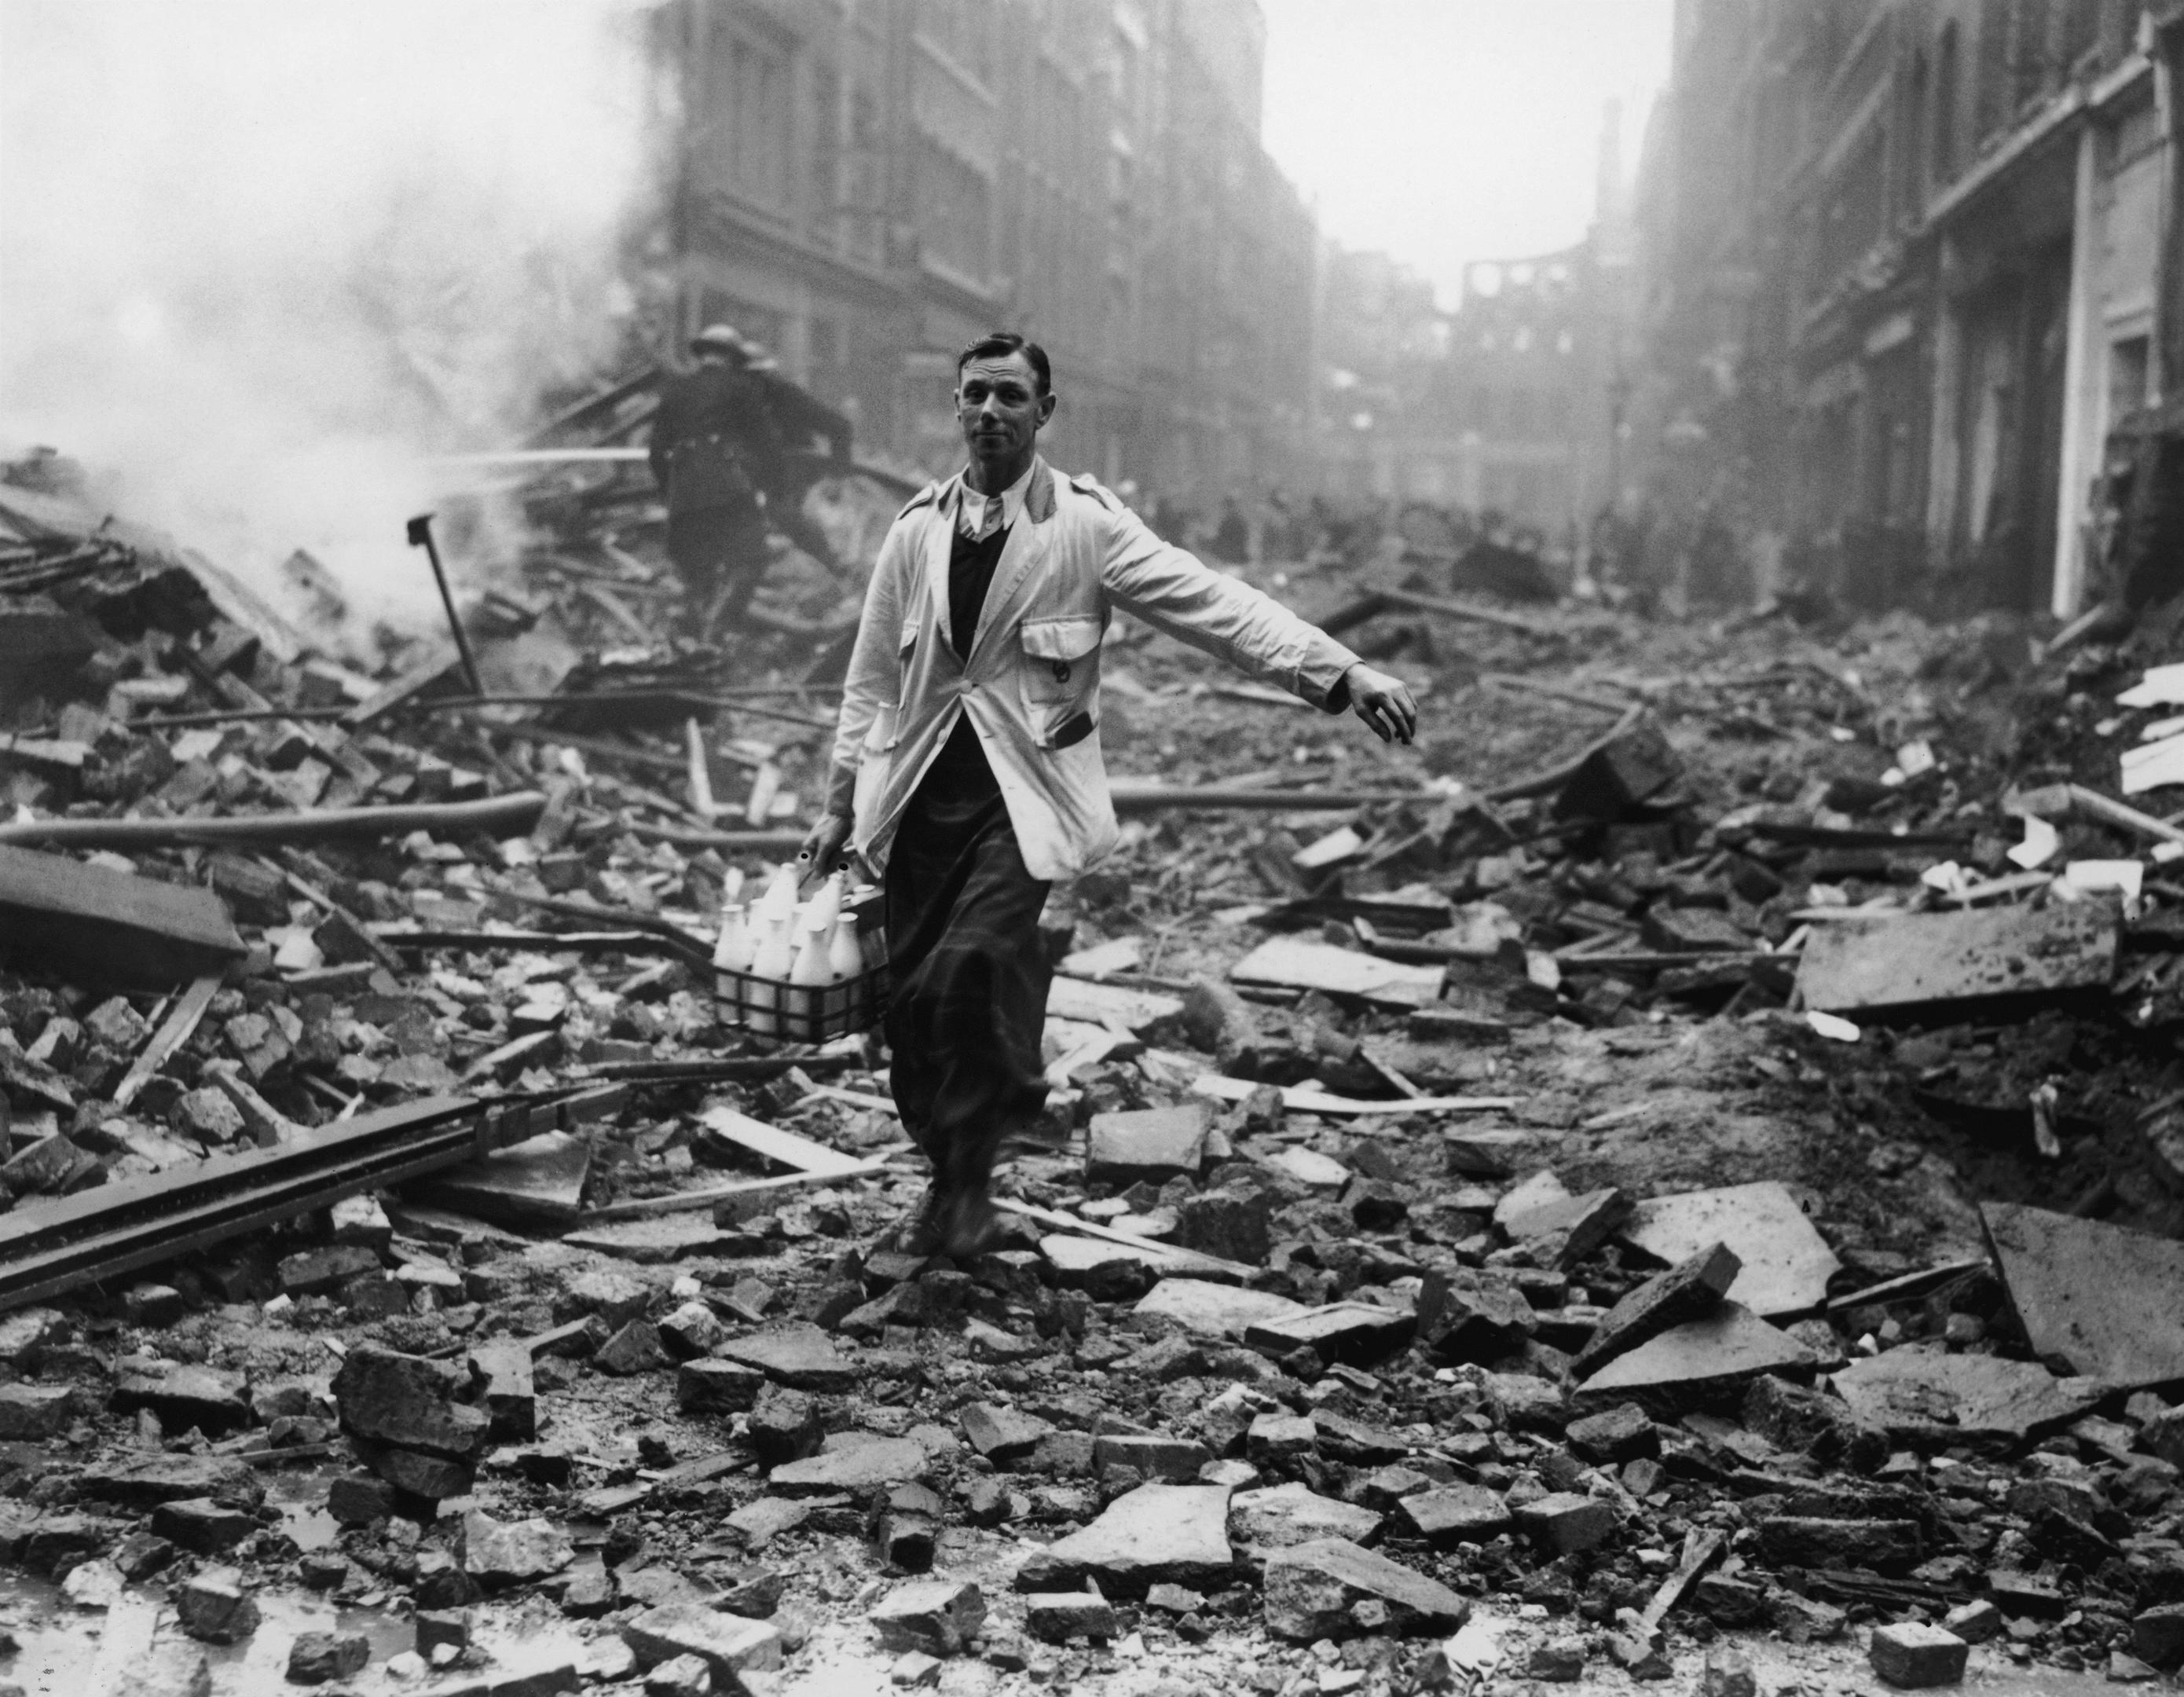 A milkman makes deliveries after a German bomb raid (Fred Morley/Getty Images)